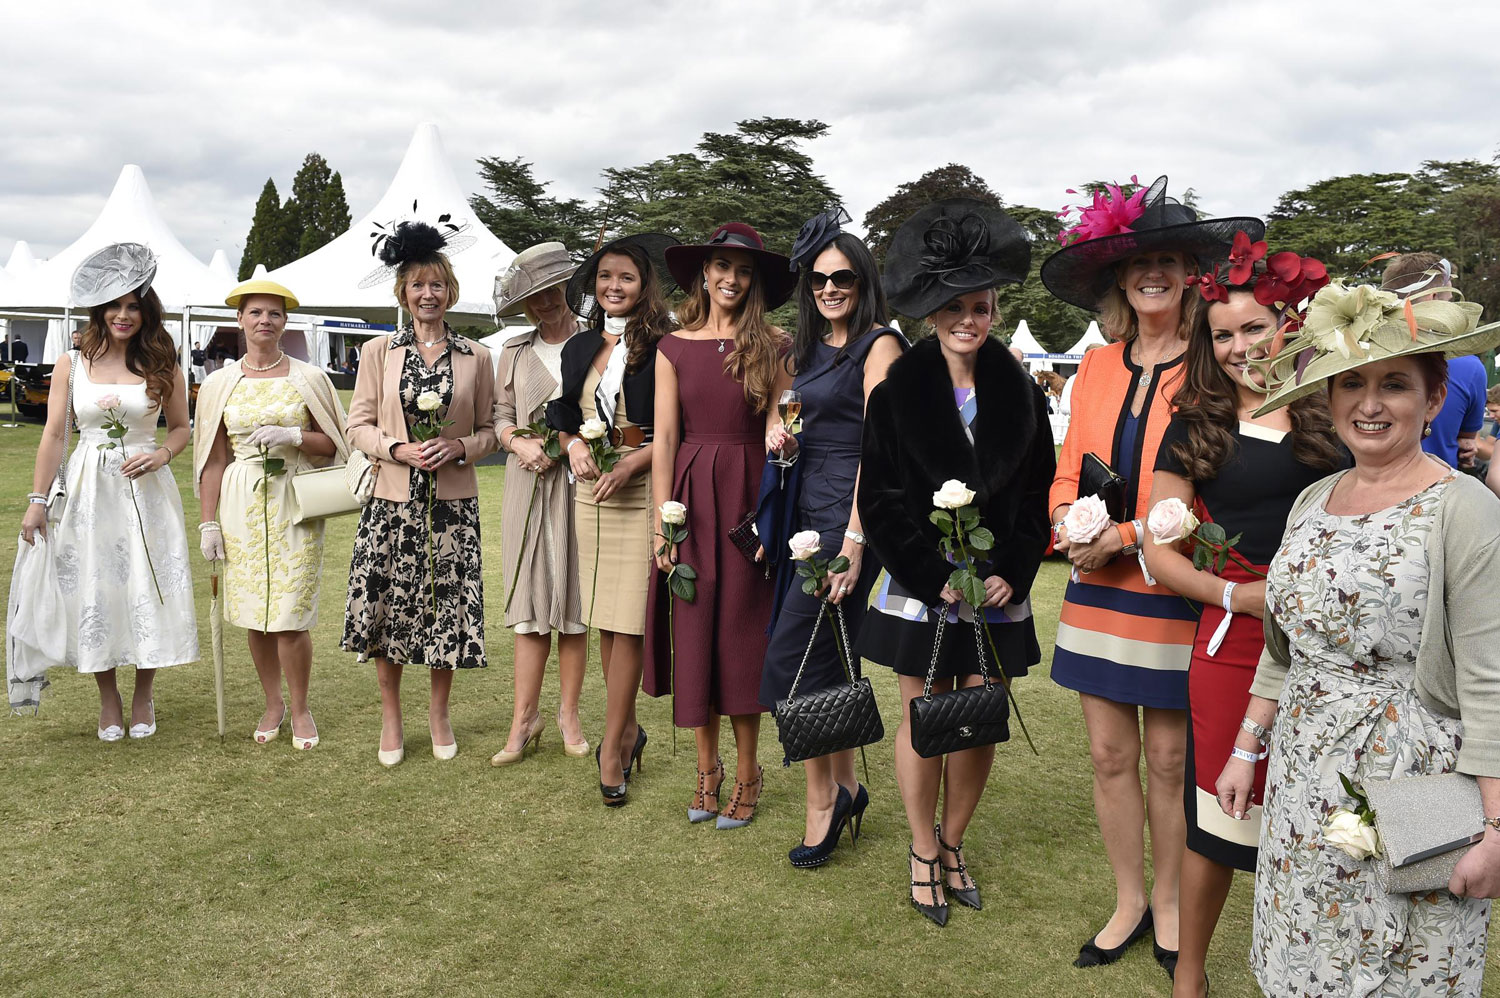 The ladies were in attendance at Salon Prive 2015